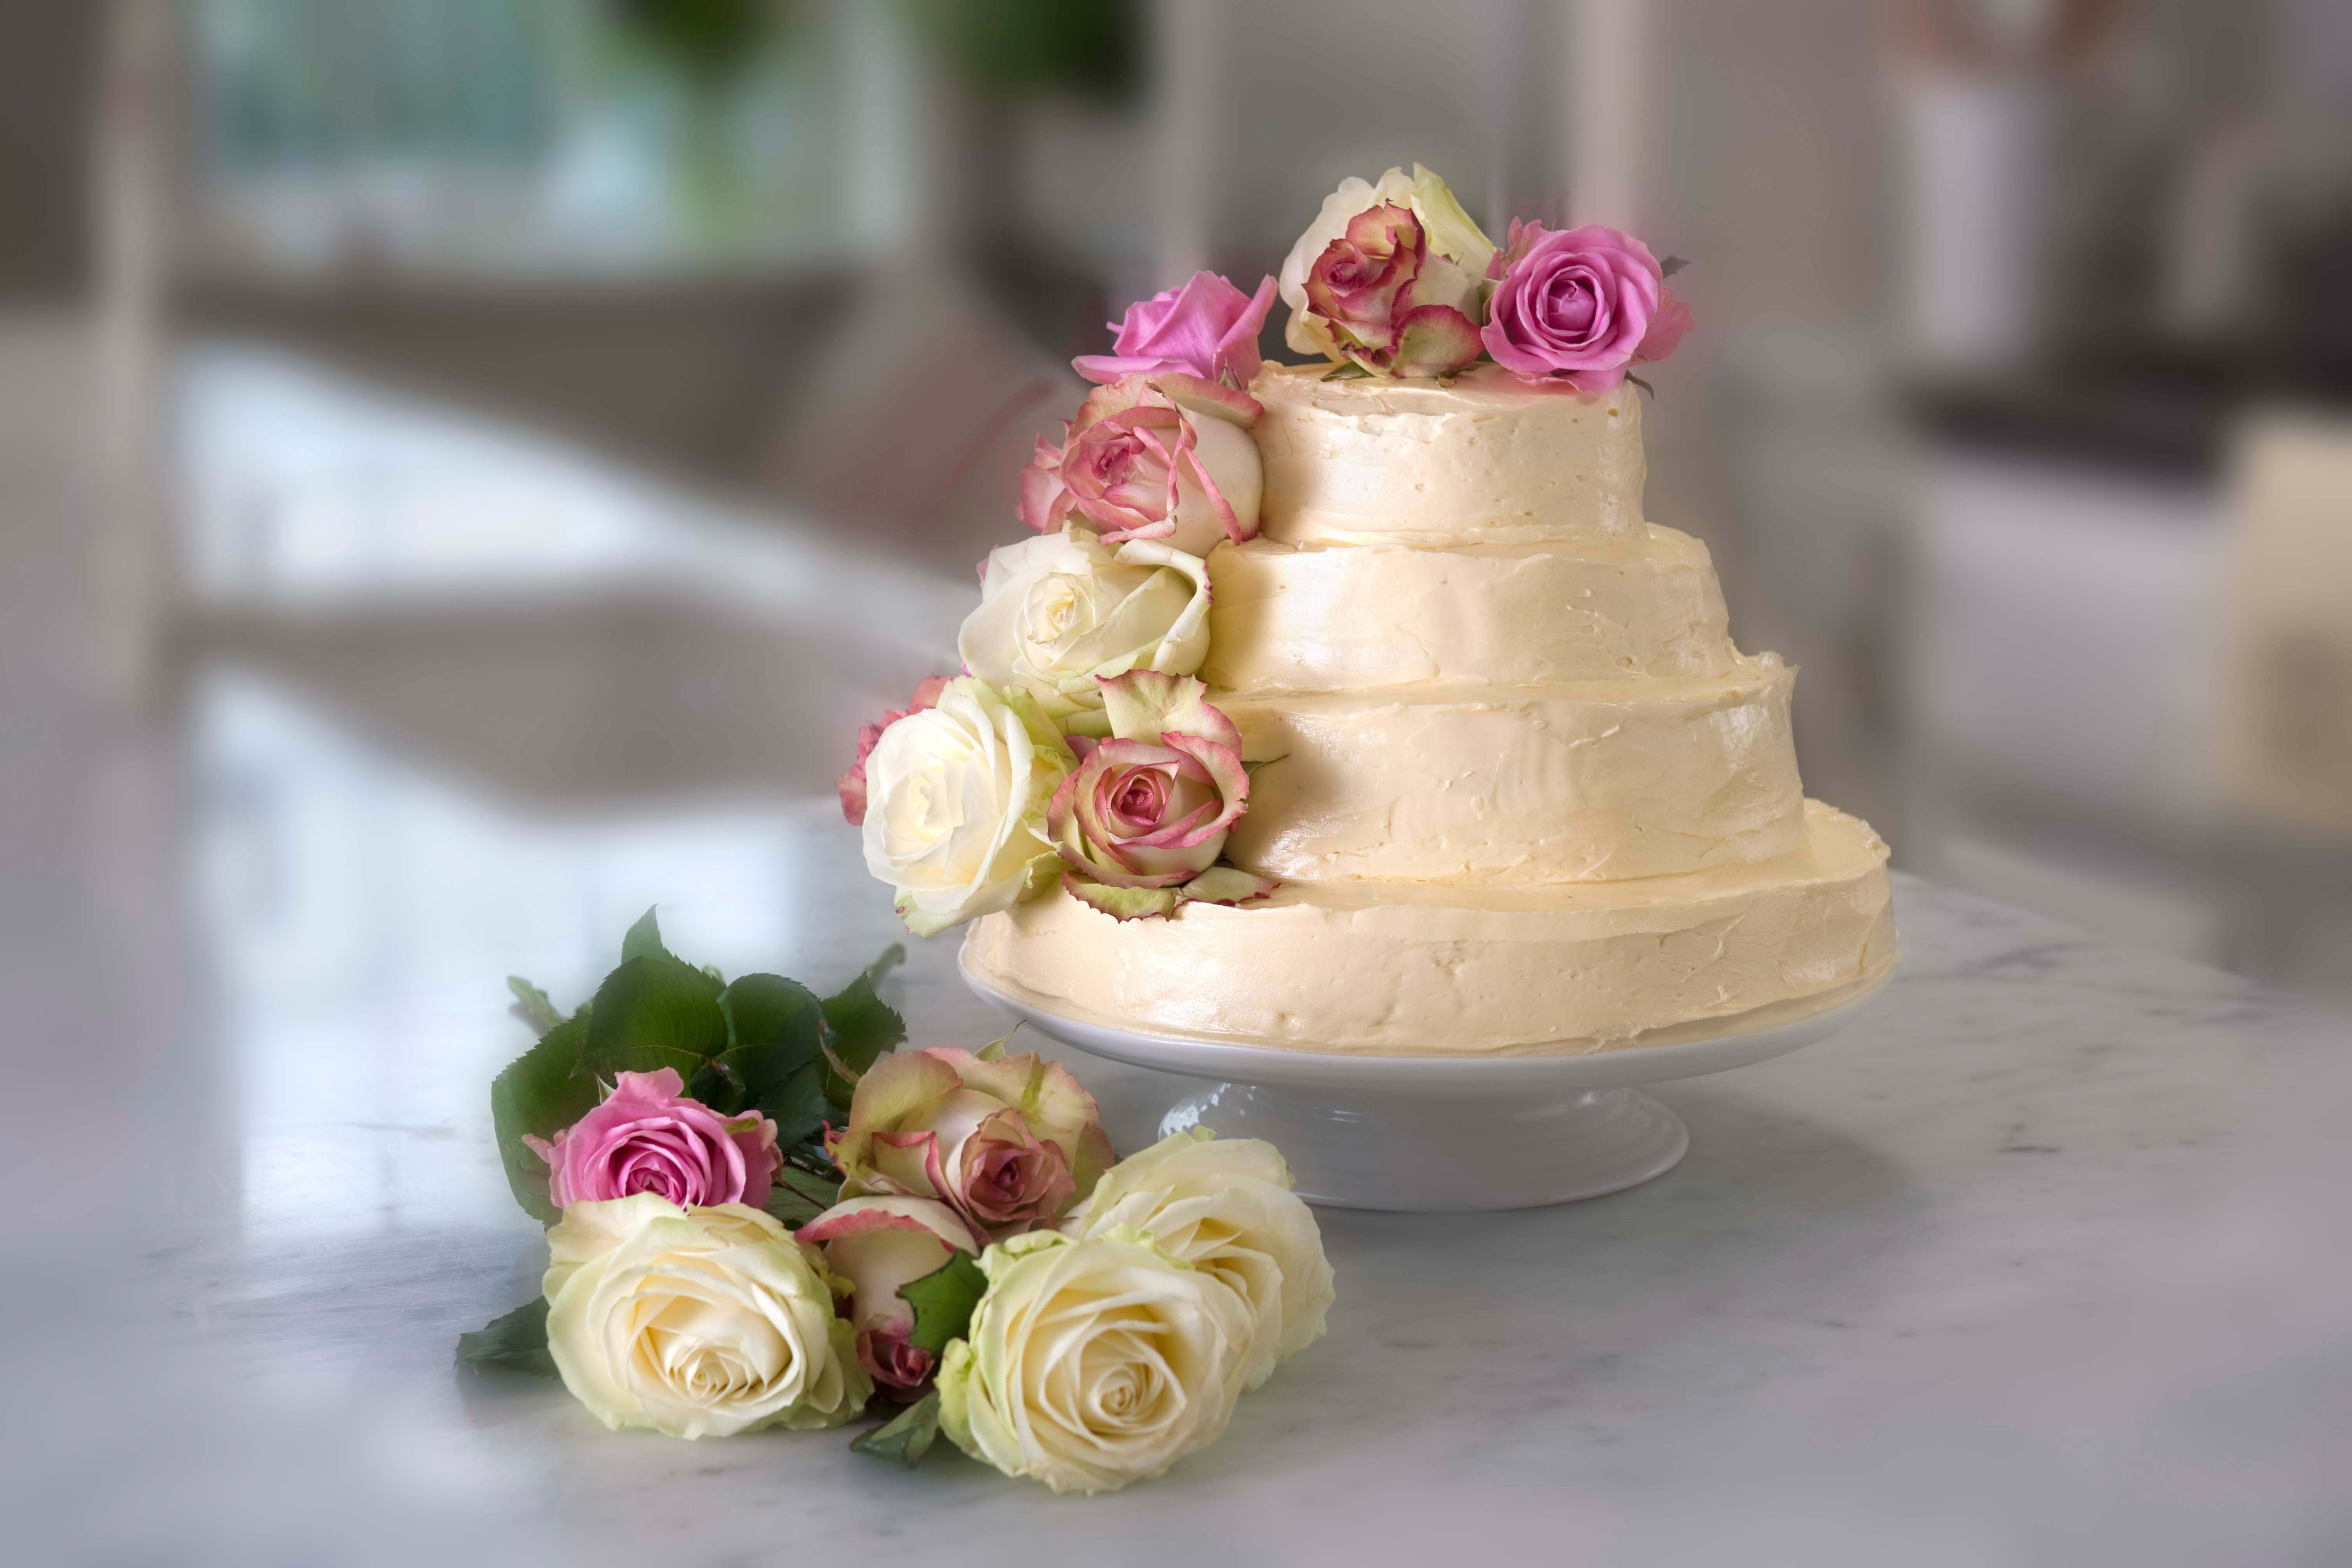 Vanilla wedding cake via @Rachel Allen http://gustotv.com/recipes/dessert/vanilla-wedding-cake/